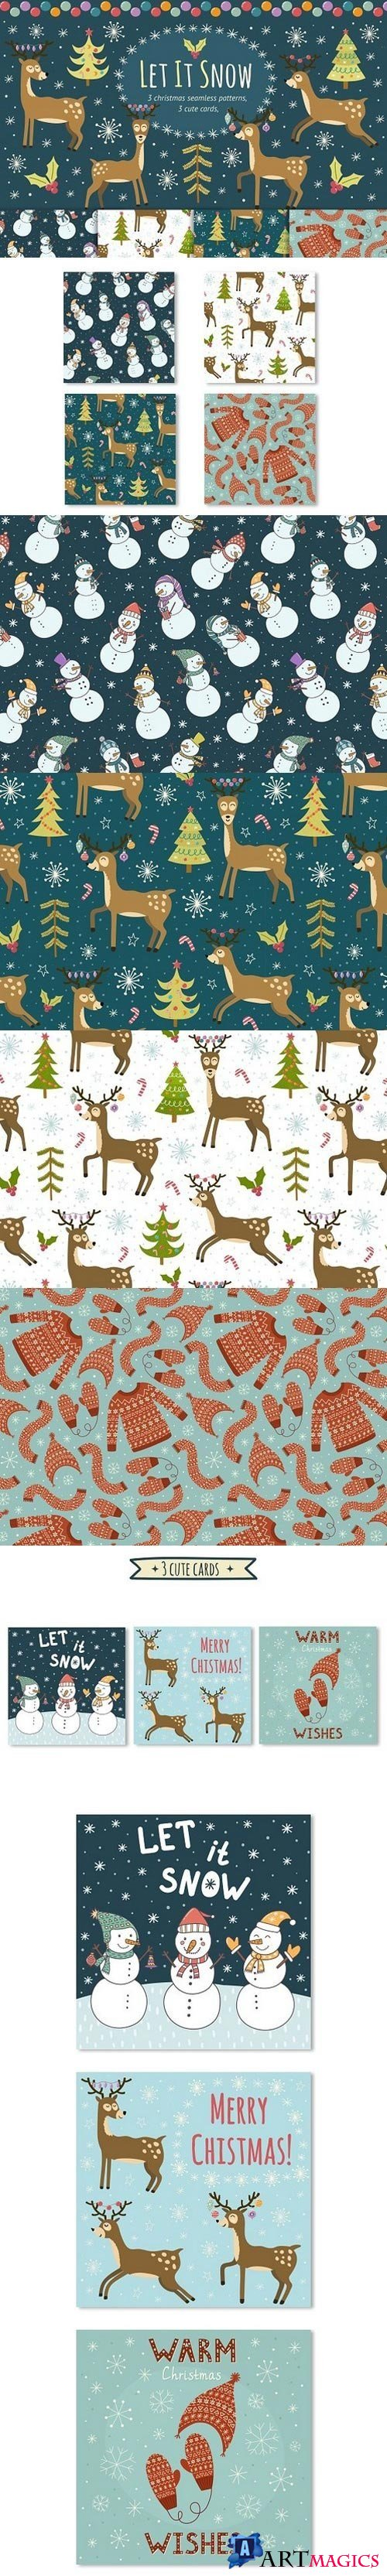 Let It Snow: patterns & cards 964496